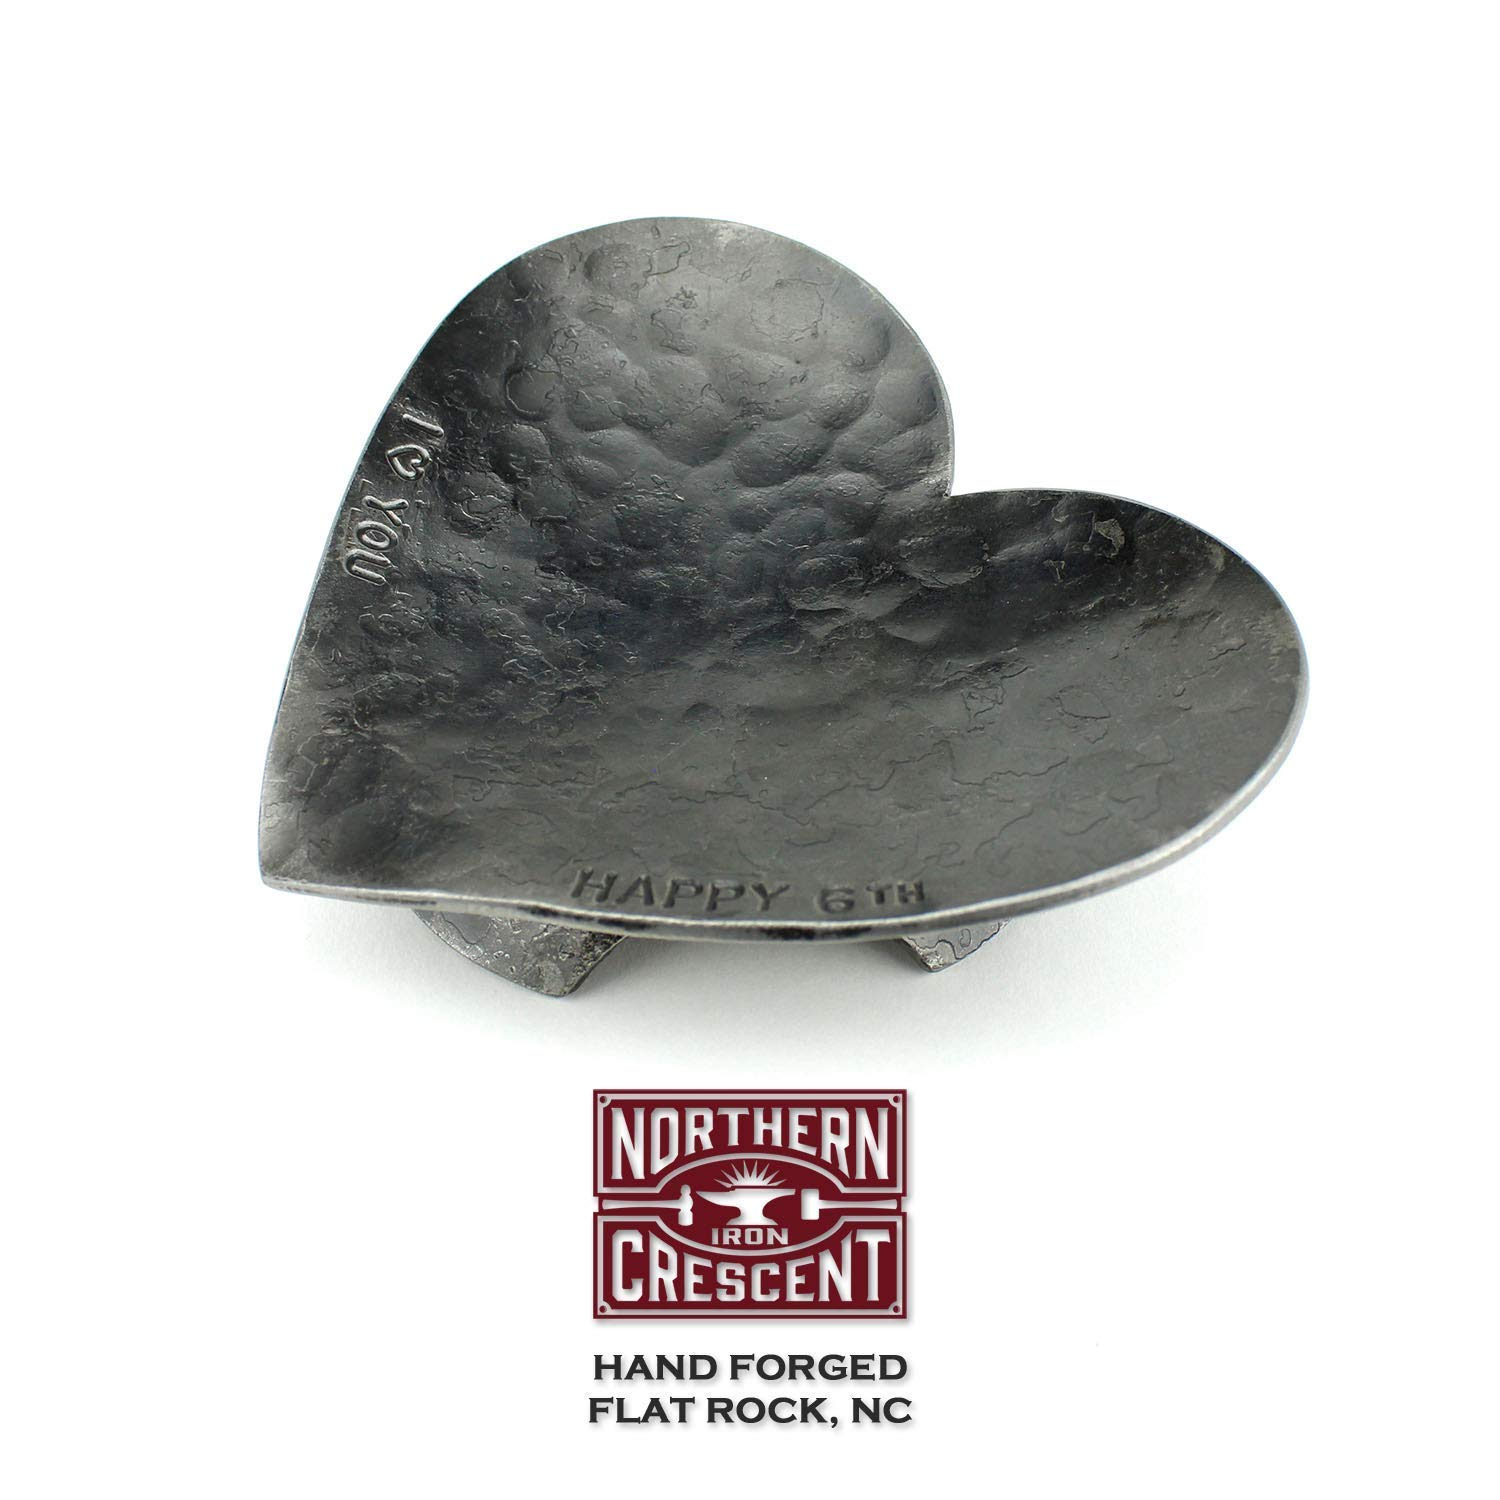 Hand Forged Heart Ring Dish, Gift For Her, 6th Anniversary Gift, Gift For Wife, Gift For Mom, Gift For Girlfriend